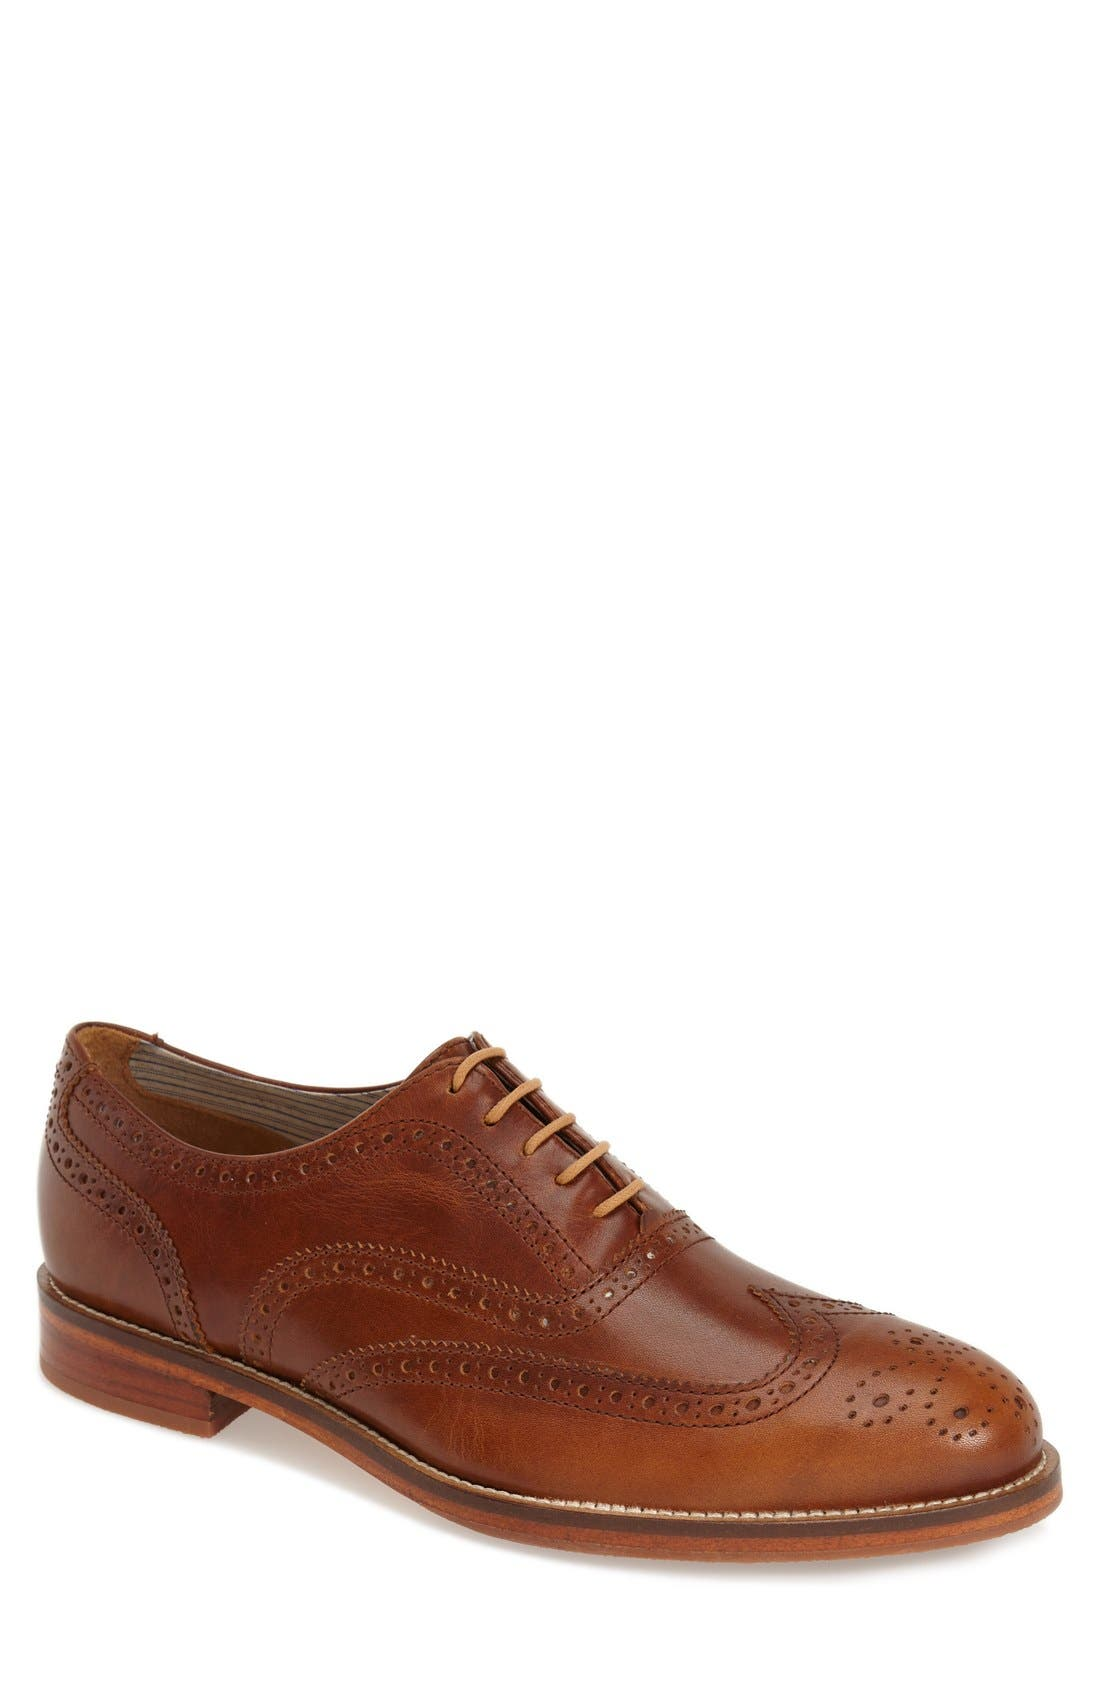 Charlie Plus Wingtip Oxford,                         Main,                         color, BRASS LEATHER